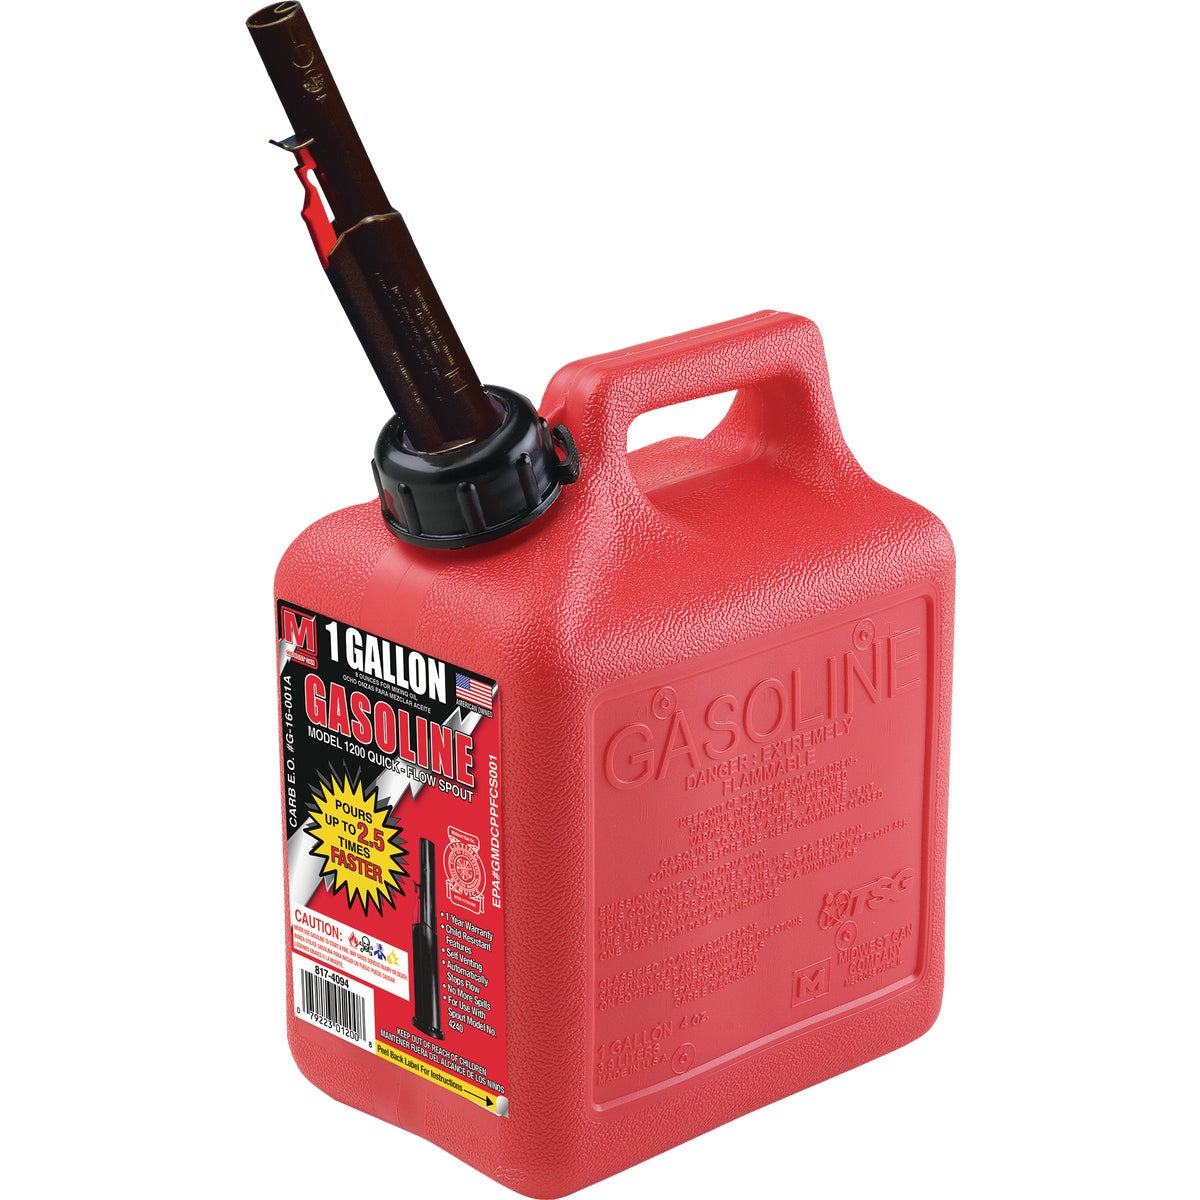 1+ GALLON GAS CAN - 85013 by Plastics Group